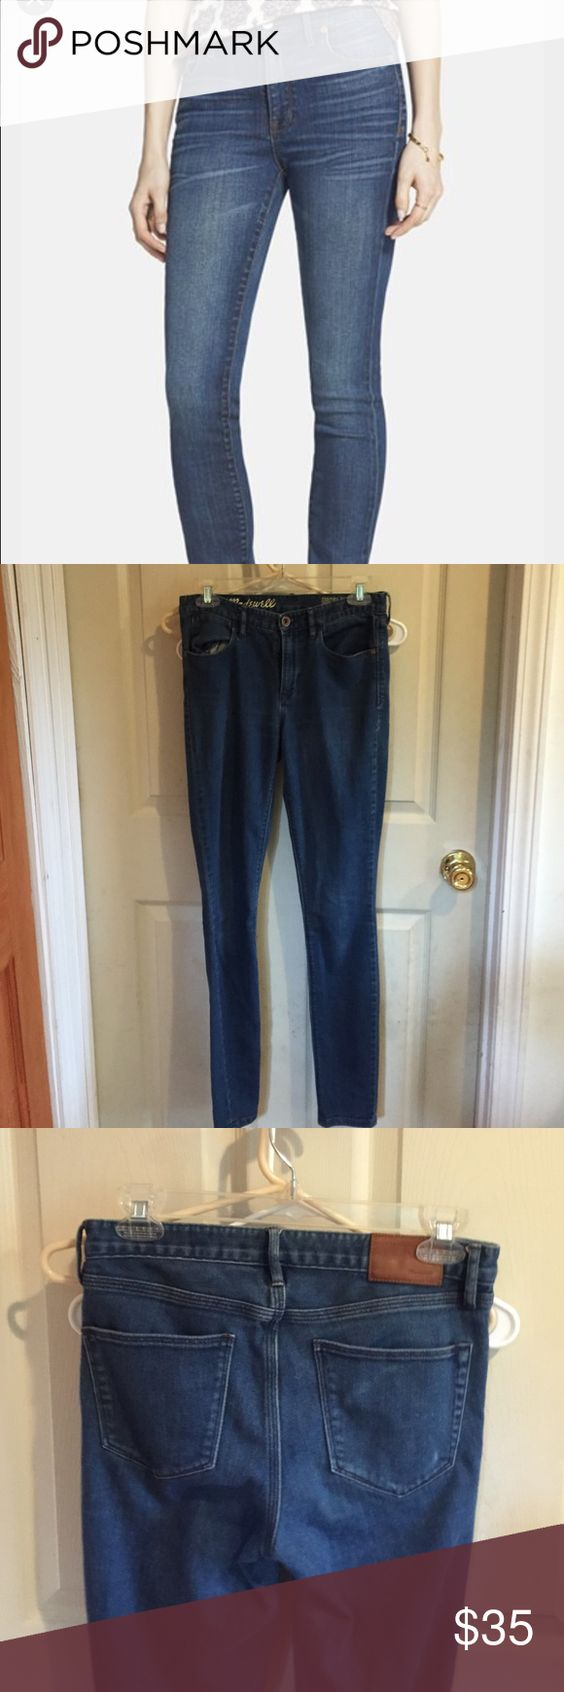 """Madewell High Riser Skinny Jeans 26"""" x 32"""". Cotton/polyester. The cover photo shows the fit, but these are a slightly different wash. Waist is about 15"""" flat no dip; rise is about 9""""; inseam is about 32""""; ankle is about 5"""" flat. Gently worn with some light fuzzing. Madewell Jeans Skinny"""